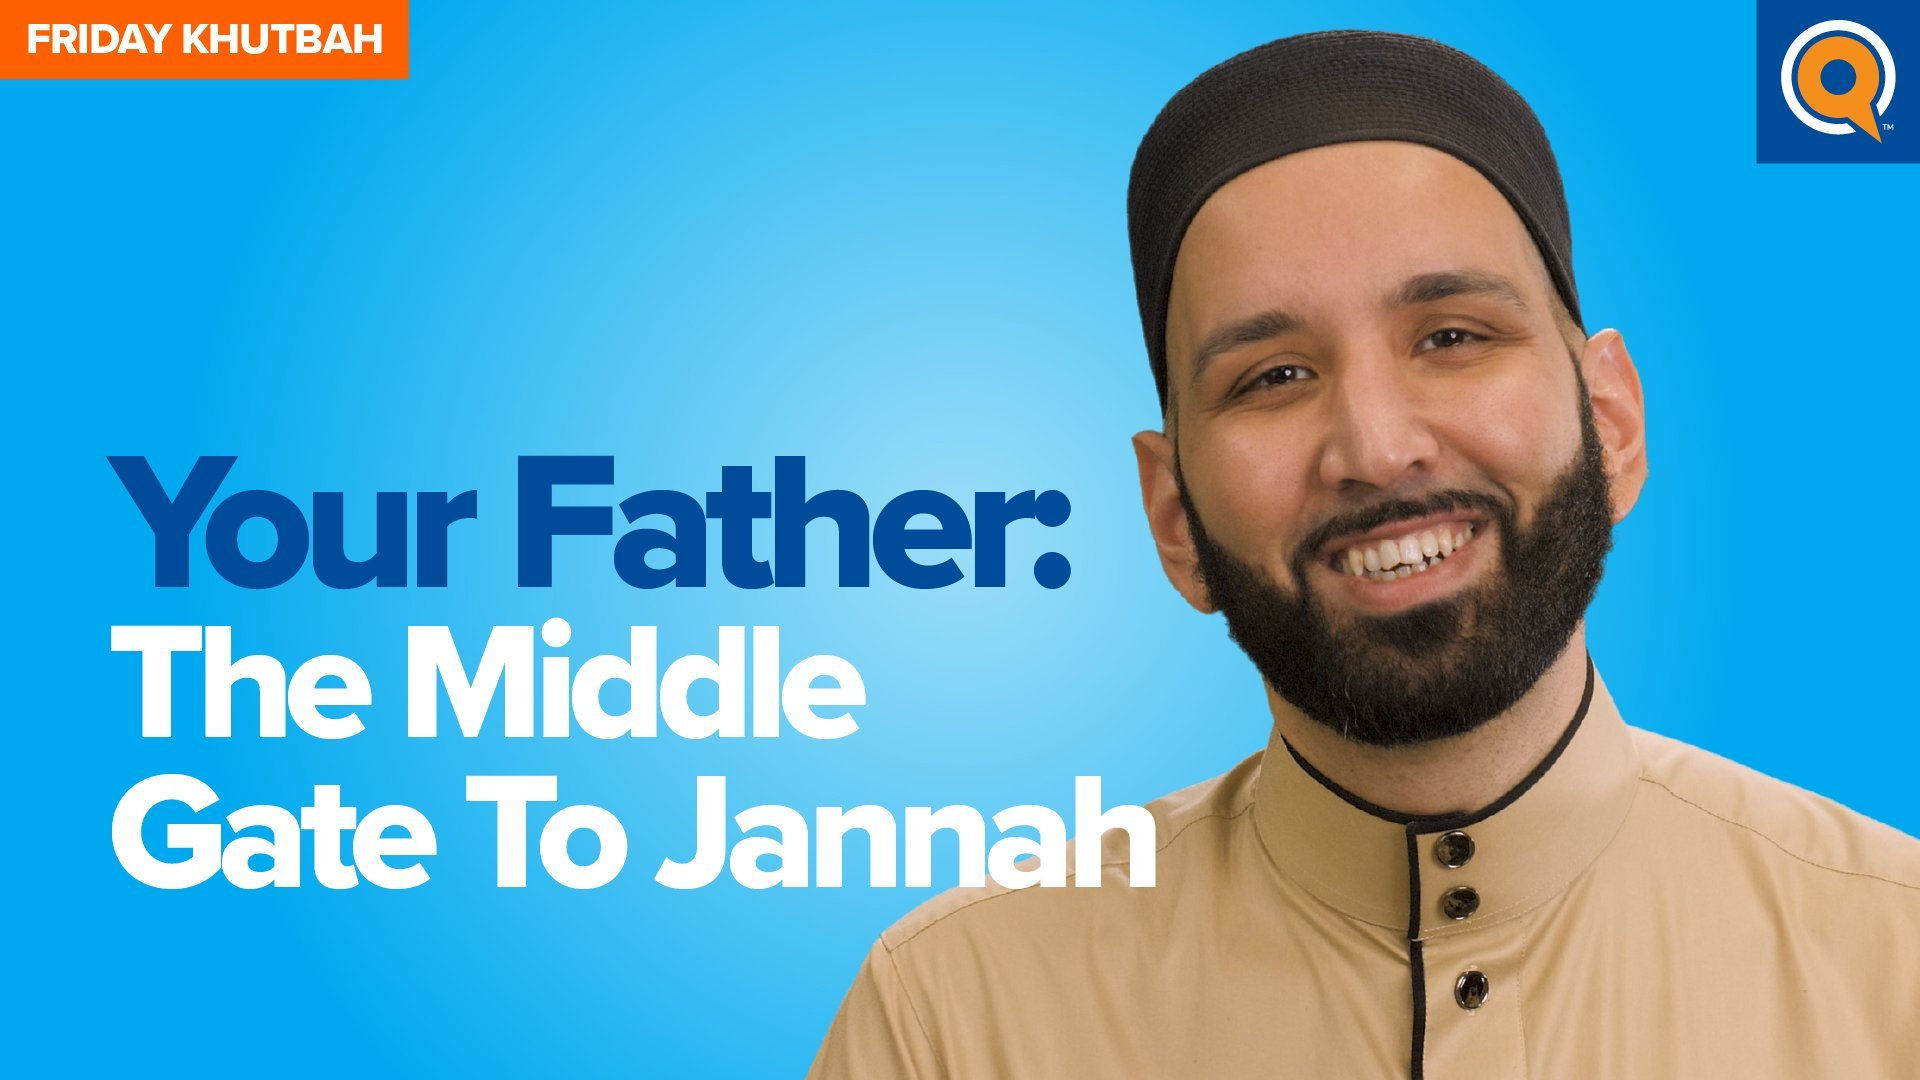 Your Father: The Middle Gate to Jannah | Khutbah